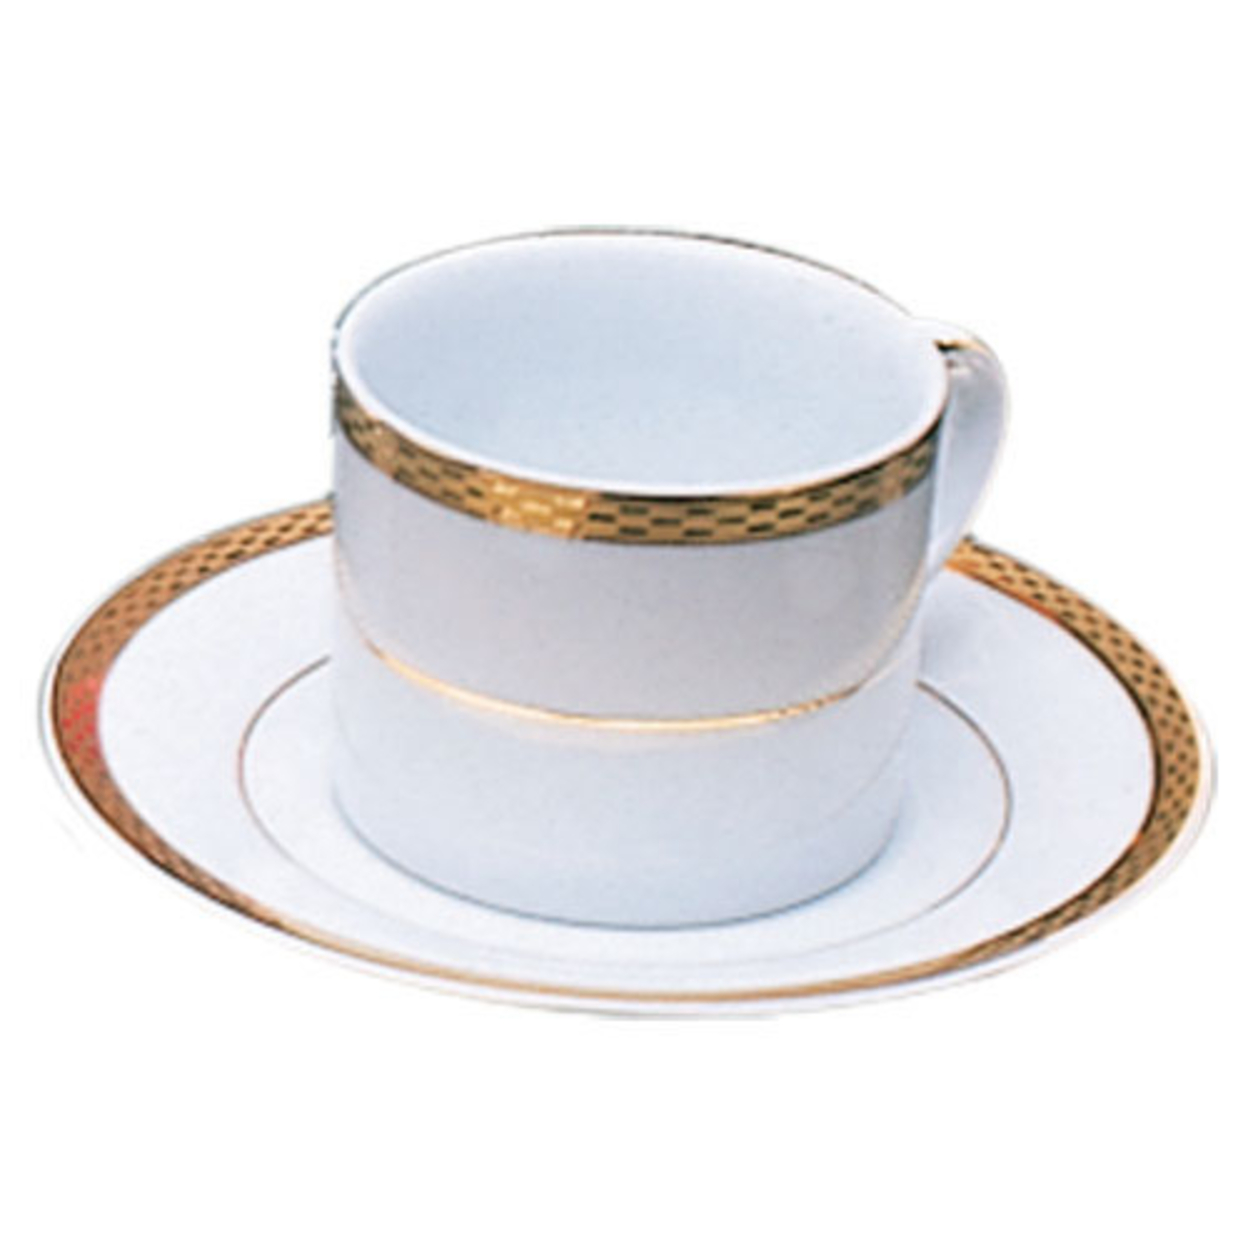 Ten Strawberry Street Athens Gold Cup-Saucer- Set of 6 59f229622a00e408bf34b19b